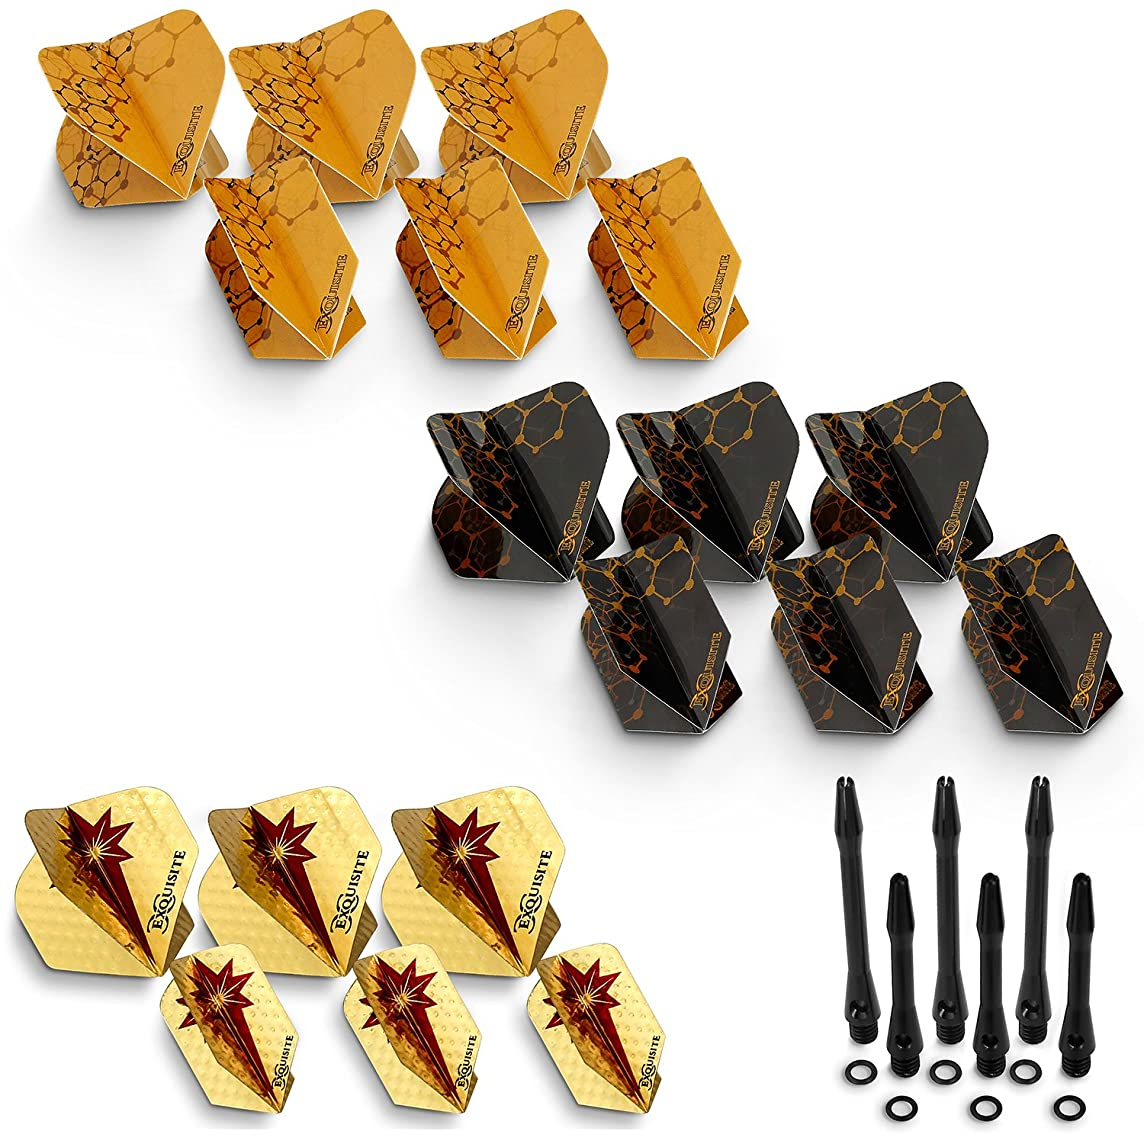 CC-Exquisite Dart Accessories Kit with Shafts and Flights - 18 Standard/Slim Flights | 6 Short/Medium Aluminum Shafts and 6 O-Rings | Darts Supplies Set | Tune Up Kit